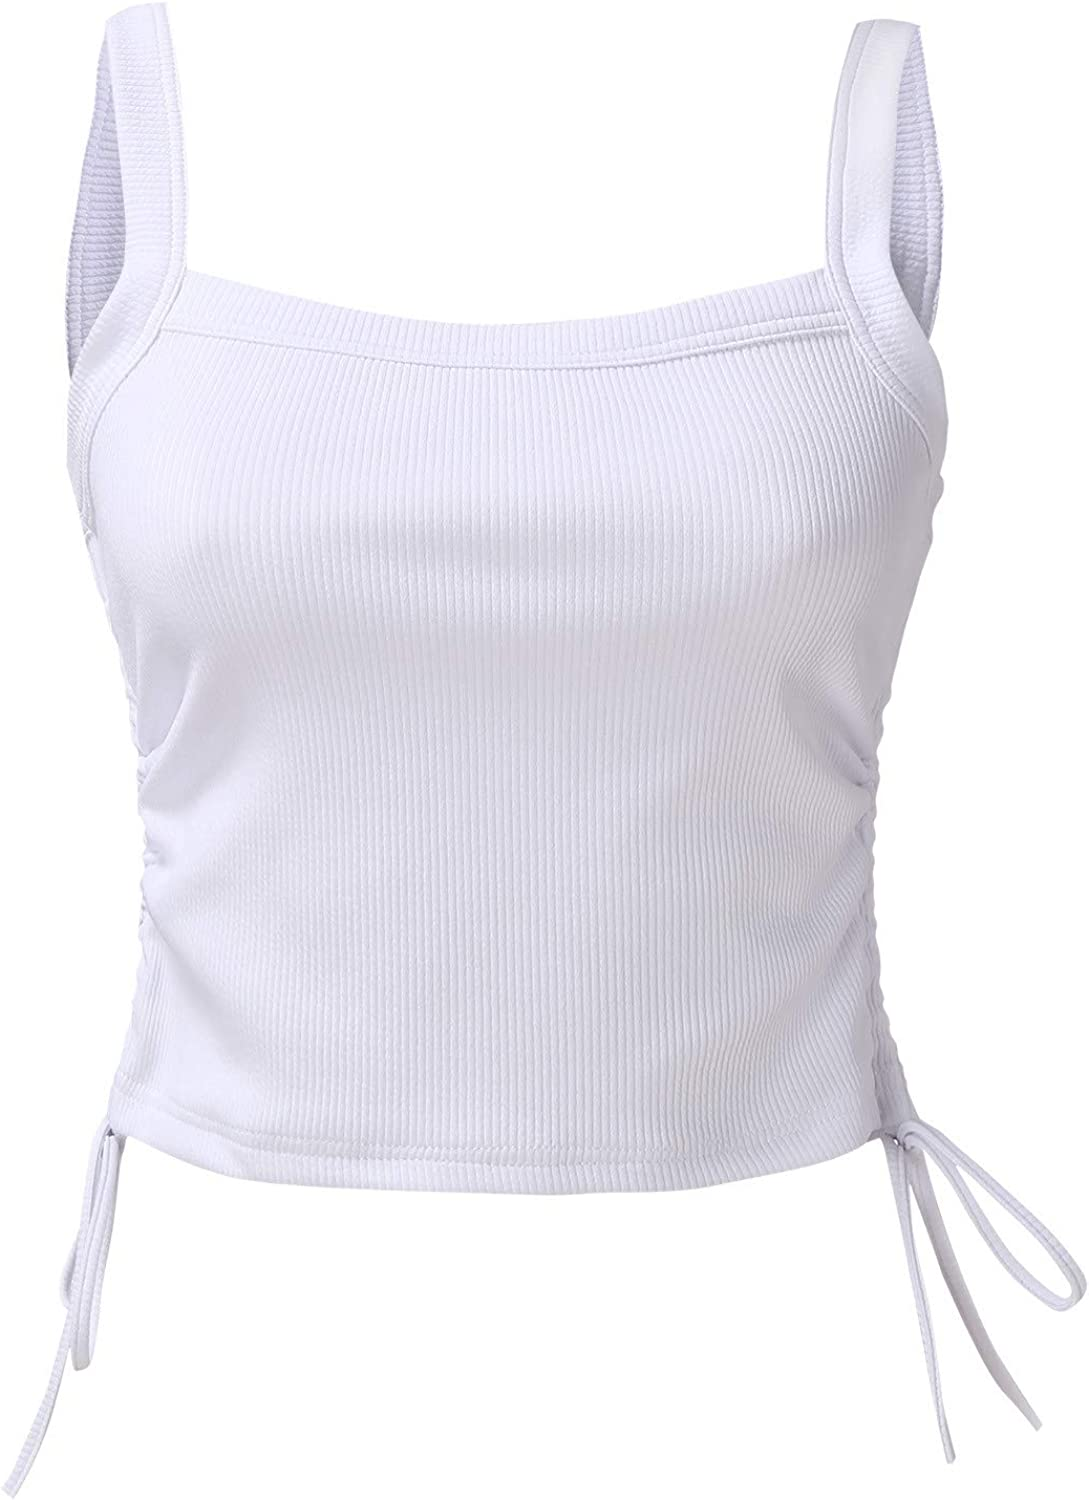 Tank Tops Sexy Drawstring Sleeveless Bare Backless Basic Vest Strap Womens Solid Camisole Crop Top